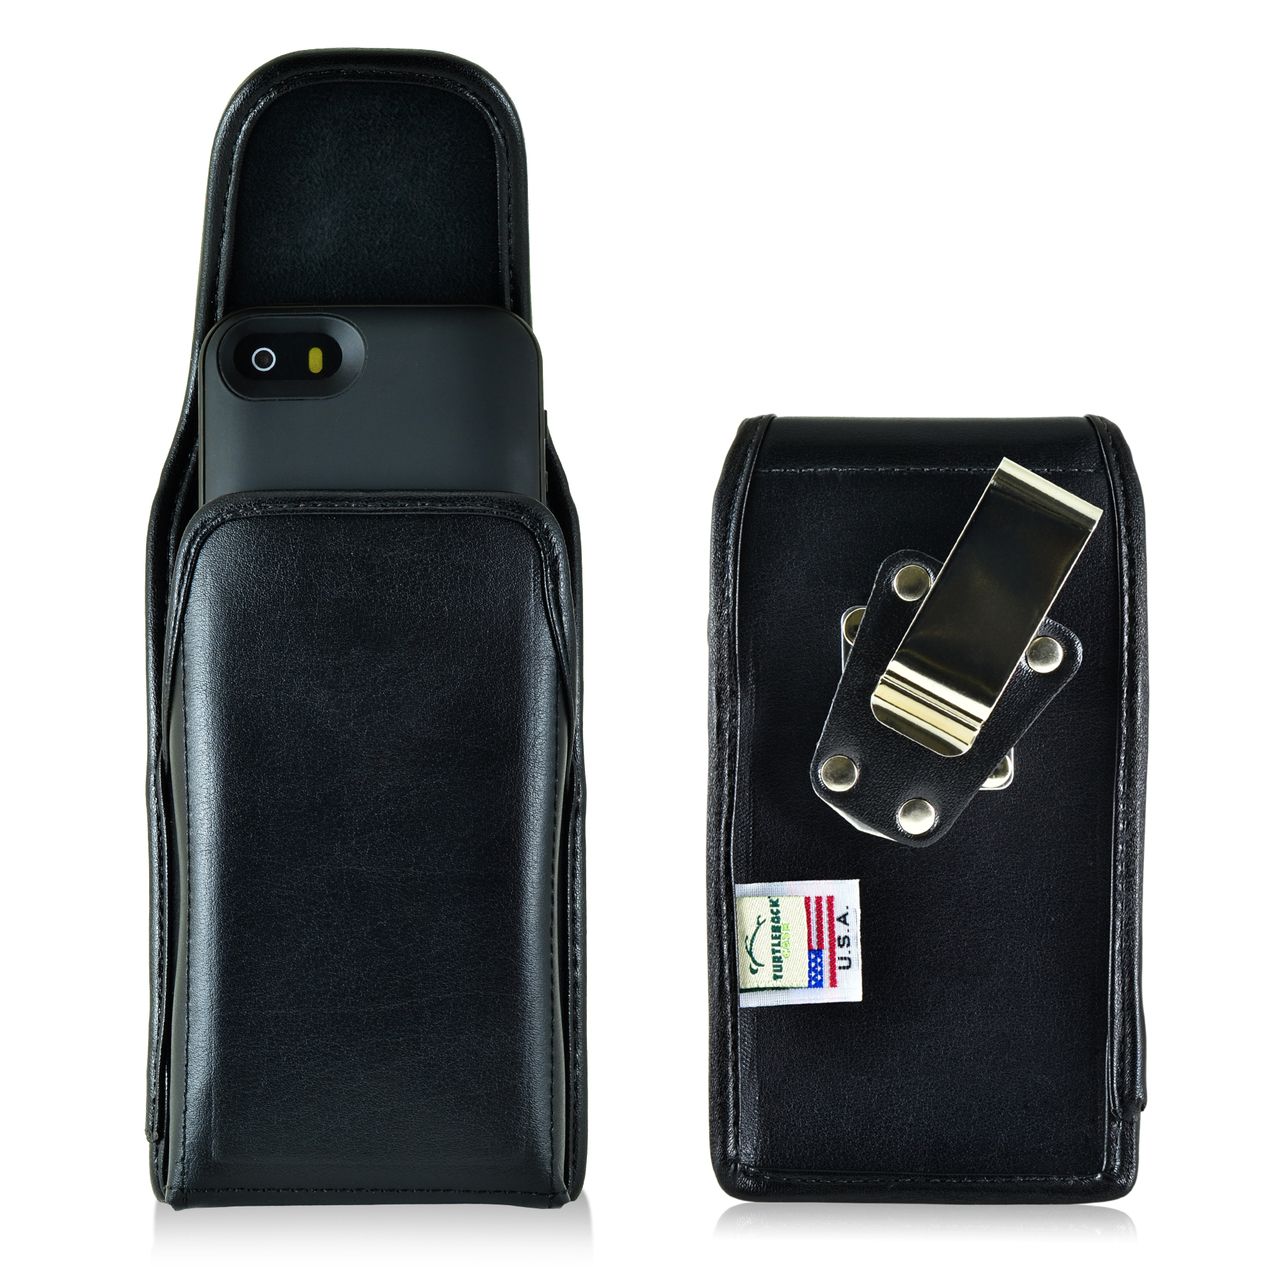 new arrival 65aba 85e9a Mophie Juice Pack iPhone SE Holster Mophie Air, Plus, Helium iPhone 5s Belt  Clip Case with Heavy Duty Metal Rotating Belt Clip - Vertical Black ...